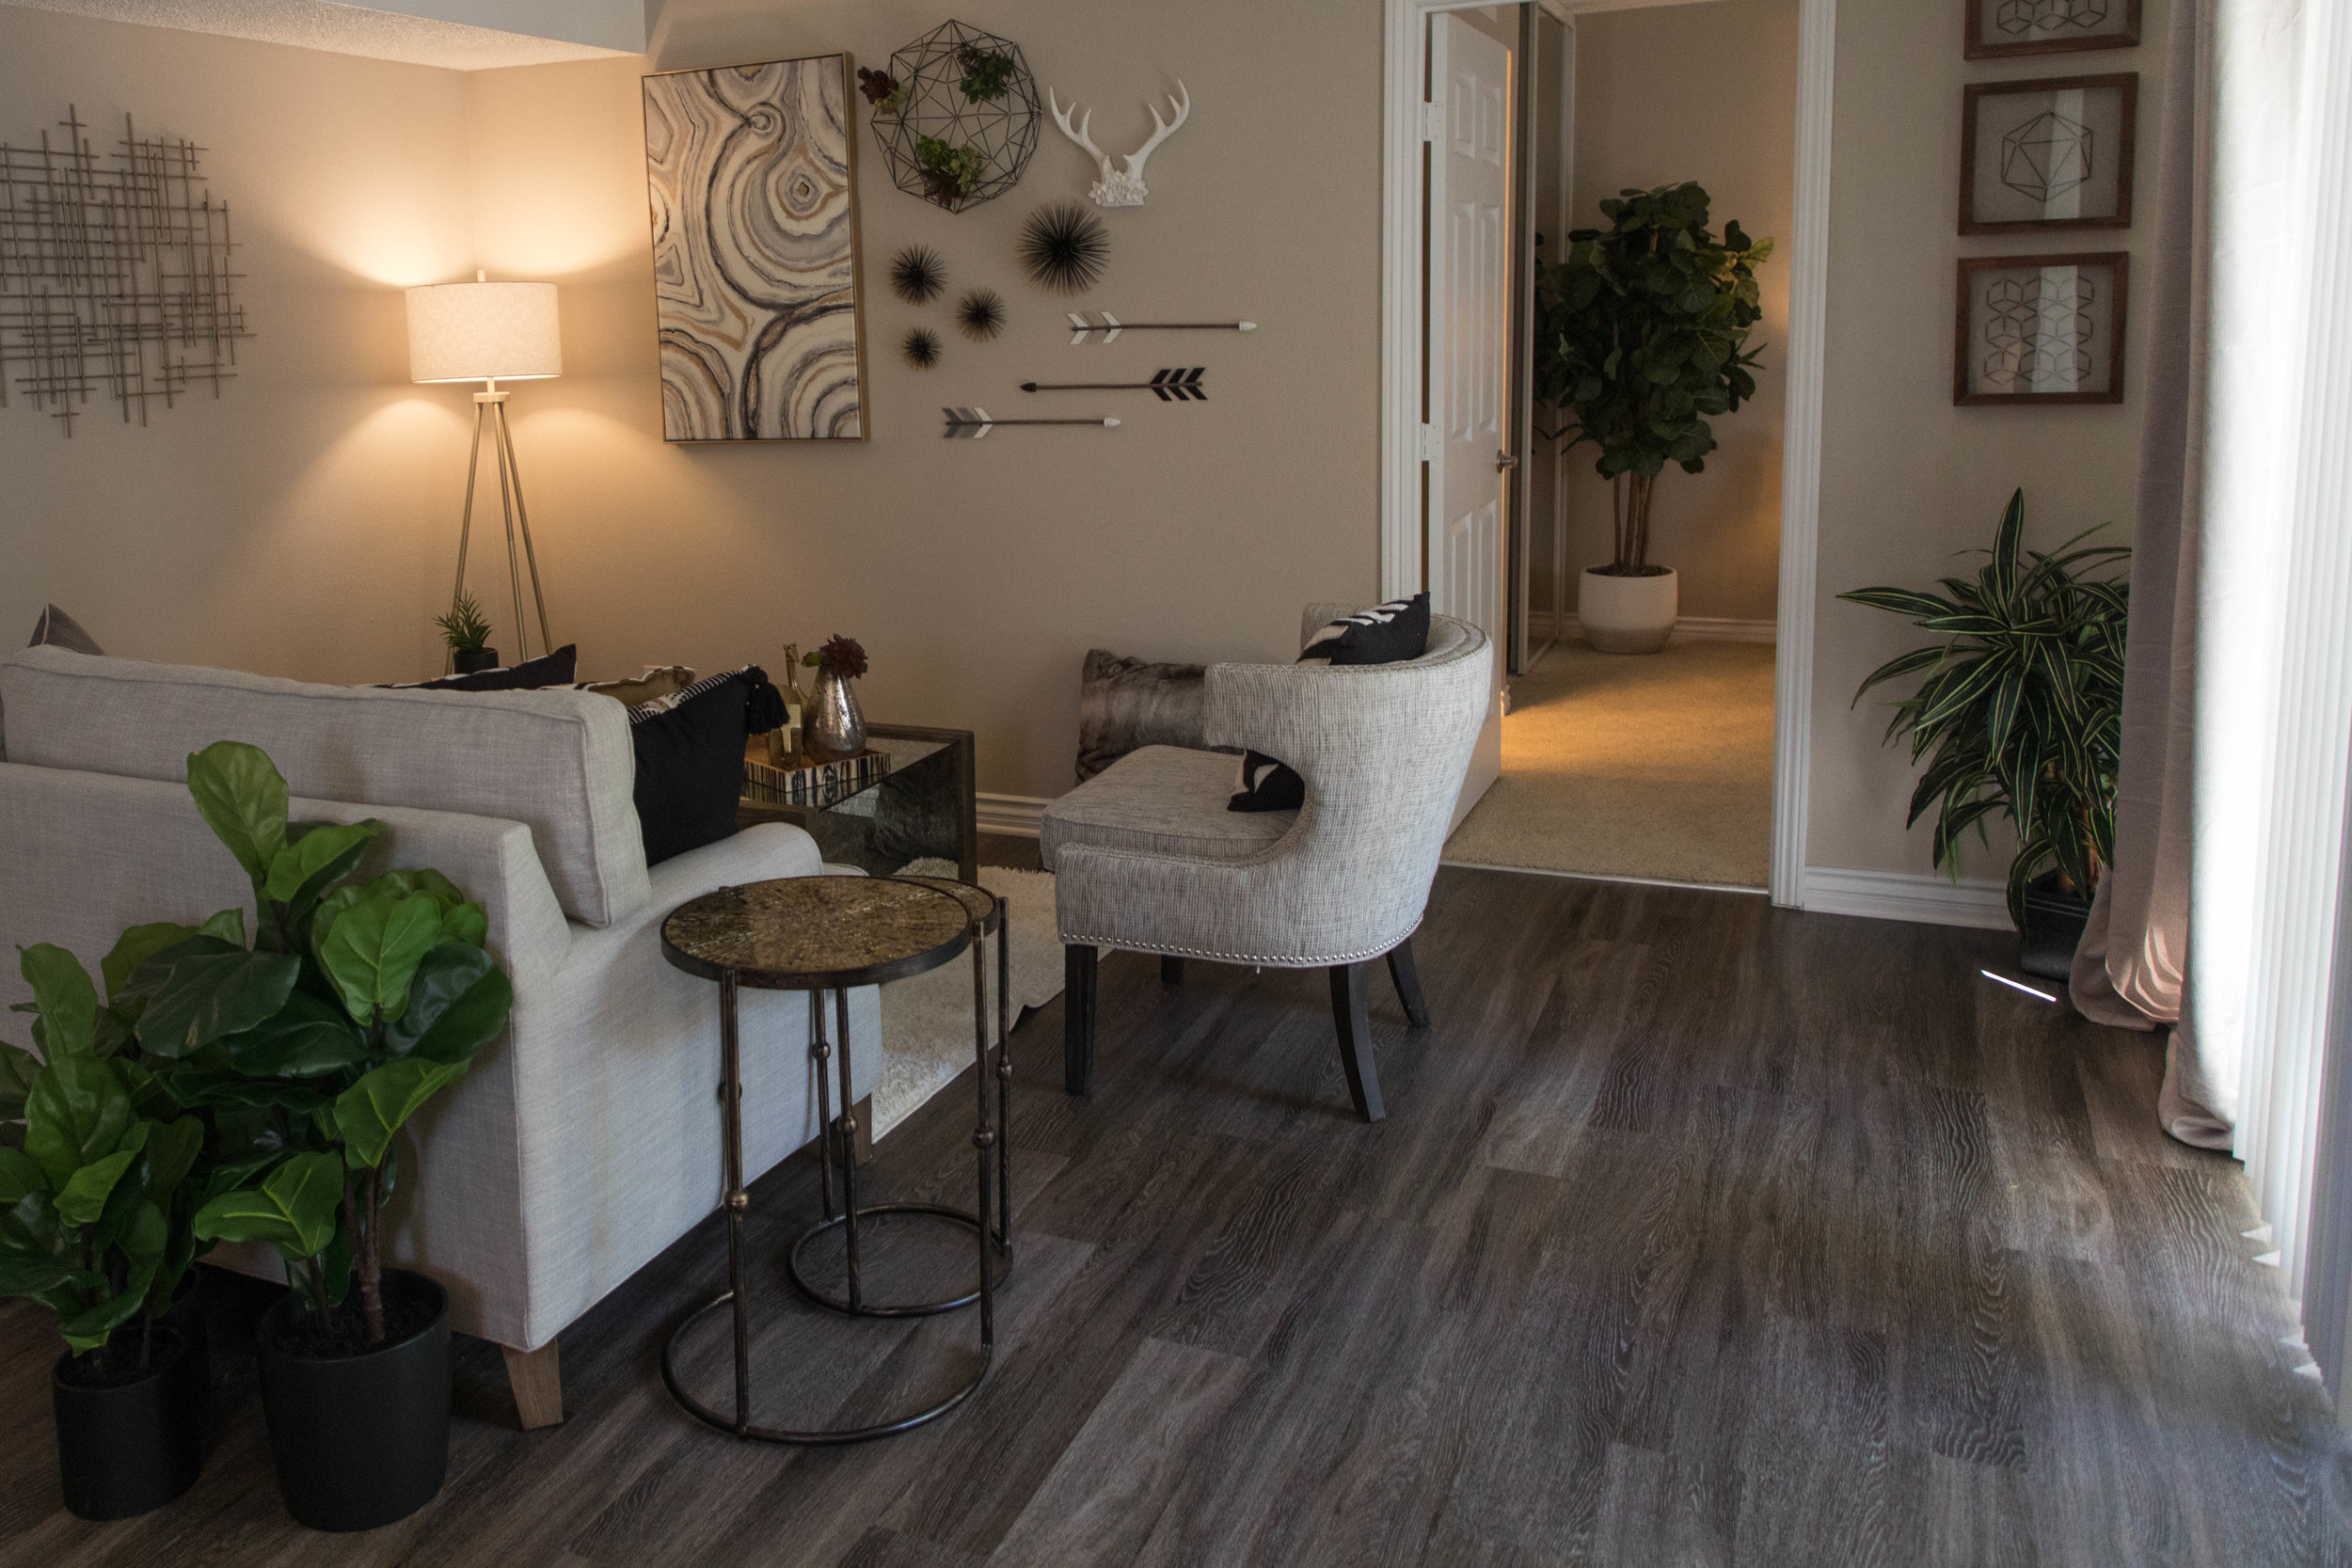 Apartment Renovations - Regal Commercial Services' team of professionals has been serving the multifamily renovation market for 30 years.